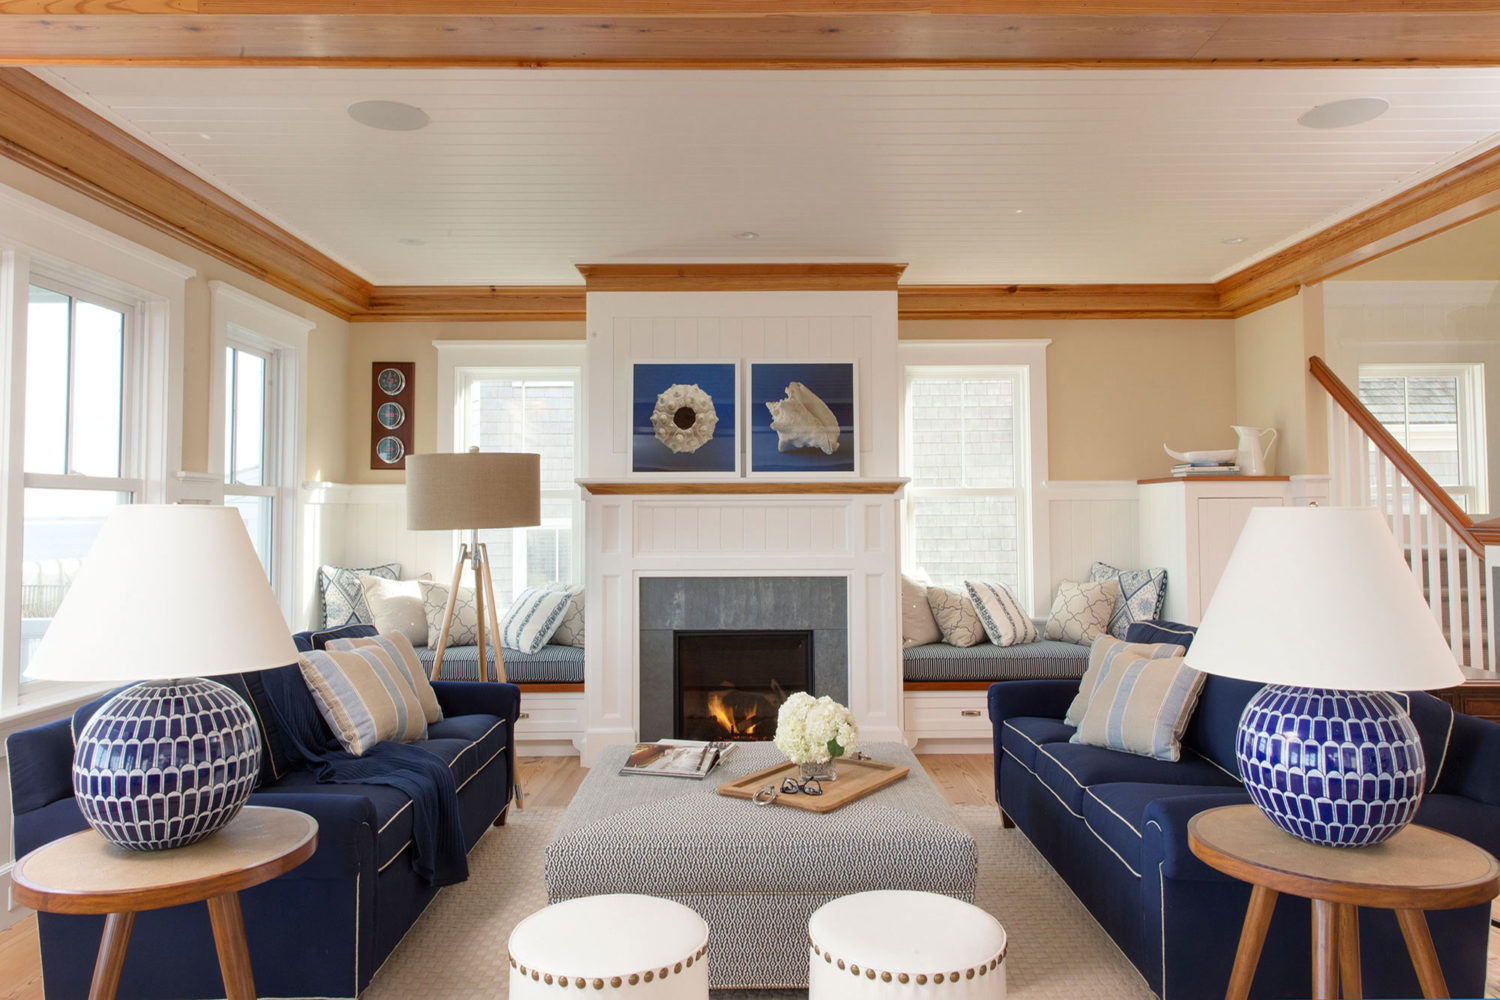 Nantucket interior design by carolyn thayer interiors on for Home interior design images